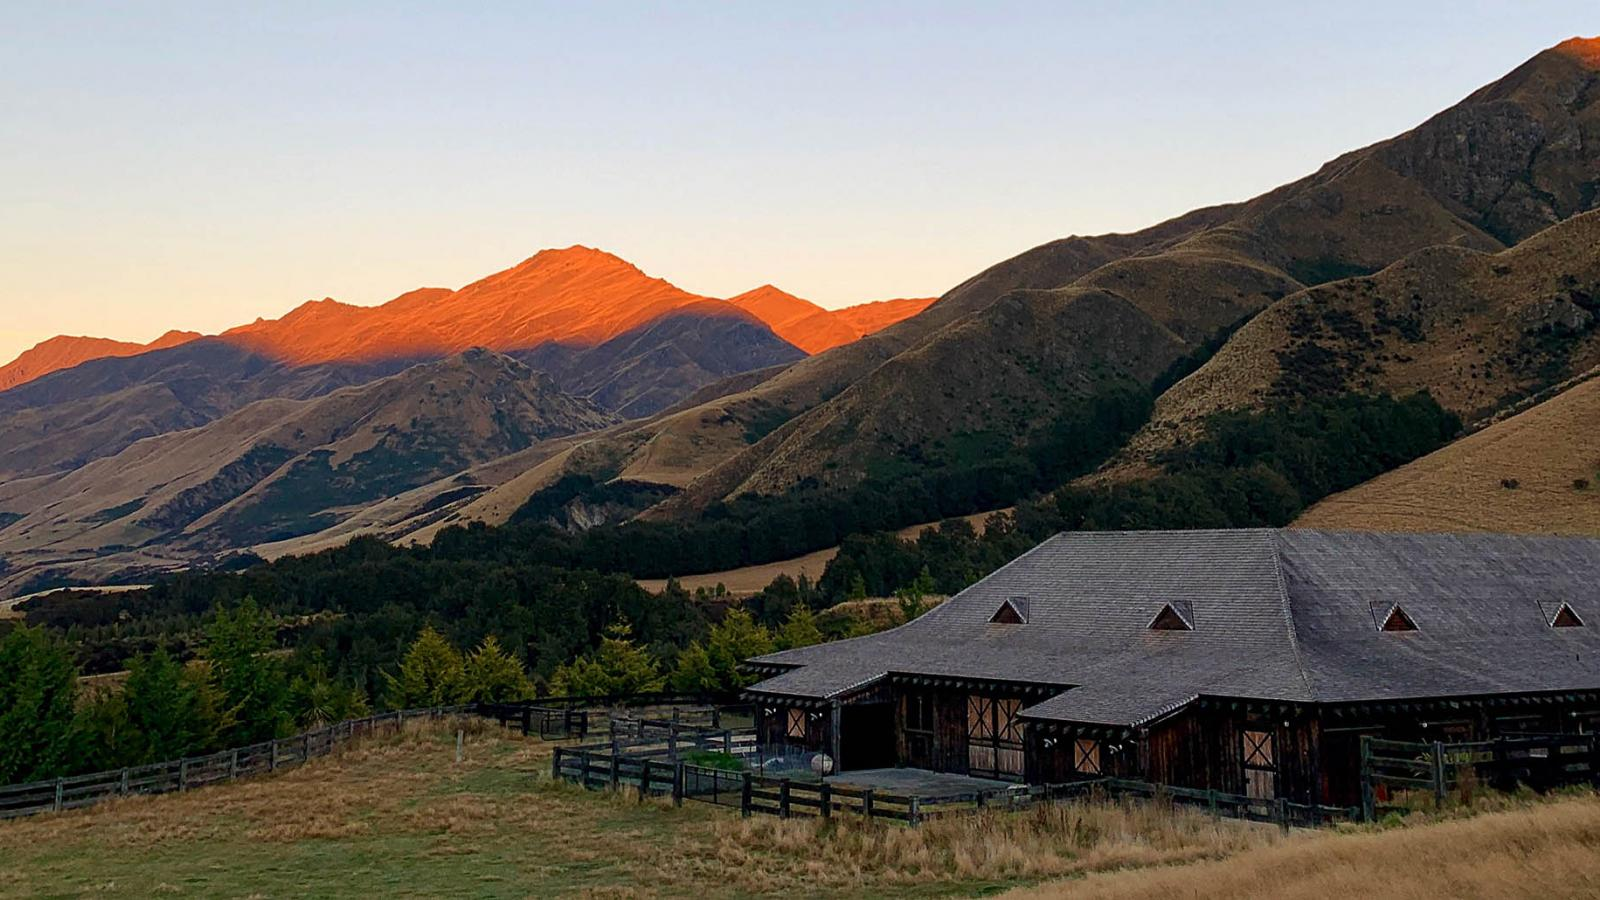 Sunrise view at Mahu Whenua Lodge in New Zealand's South Island